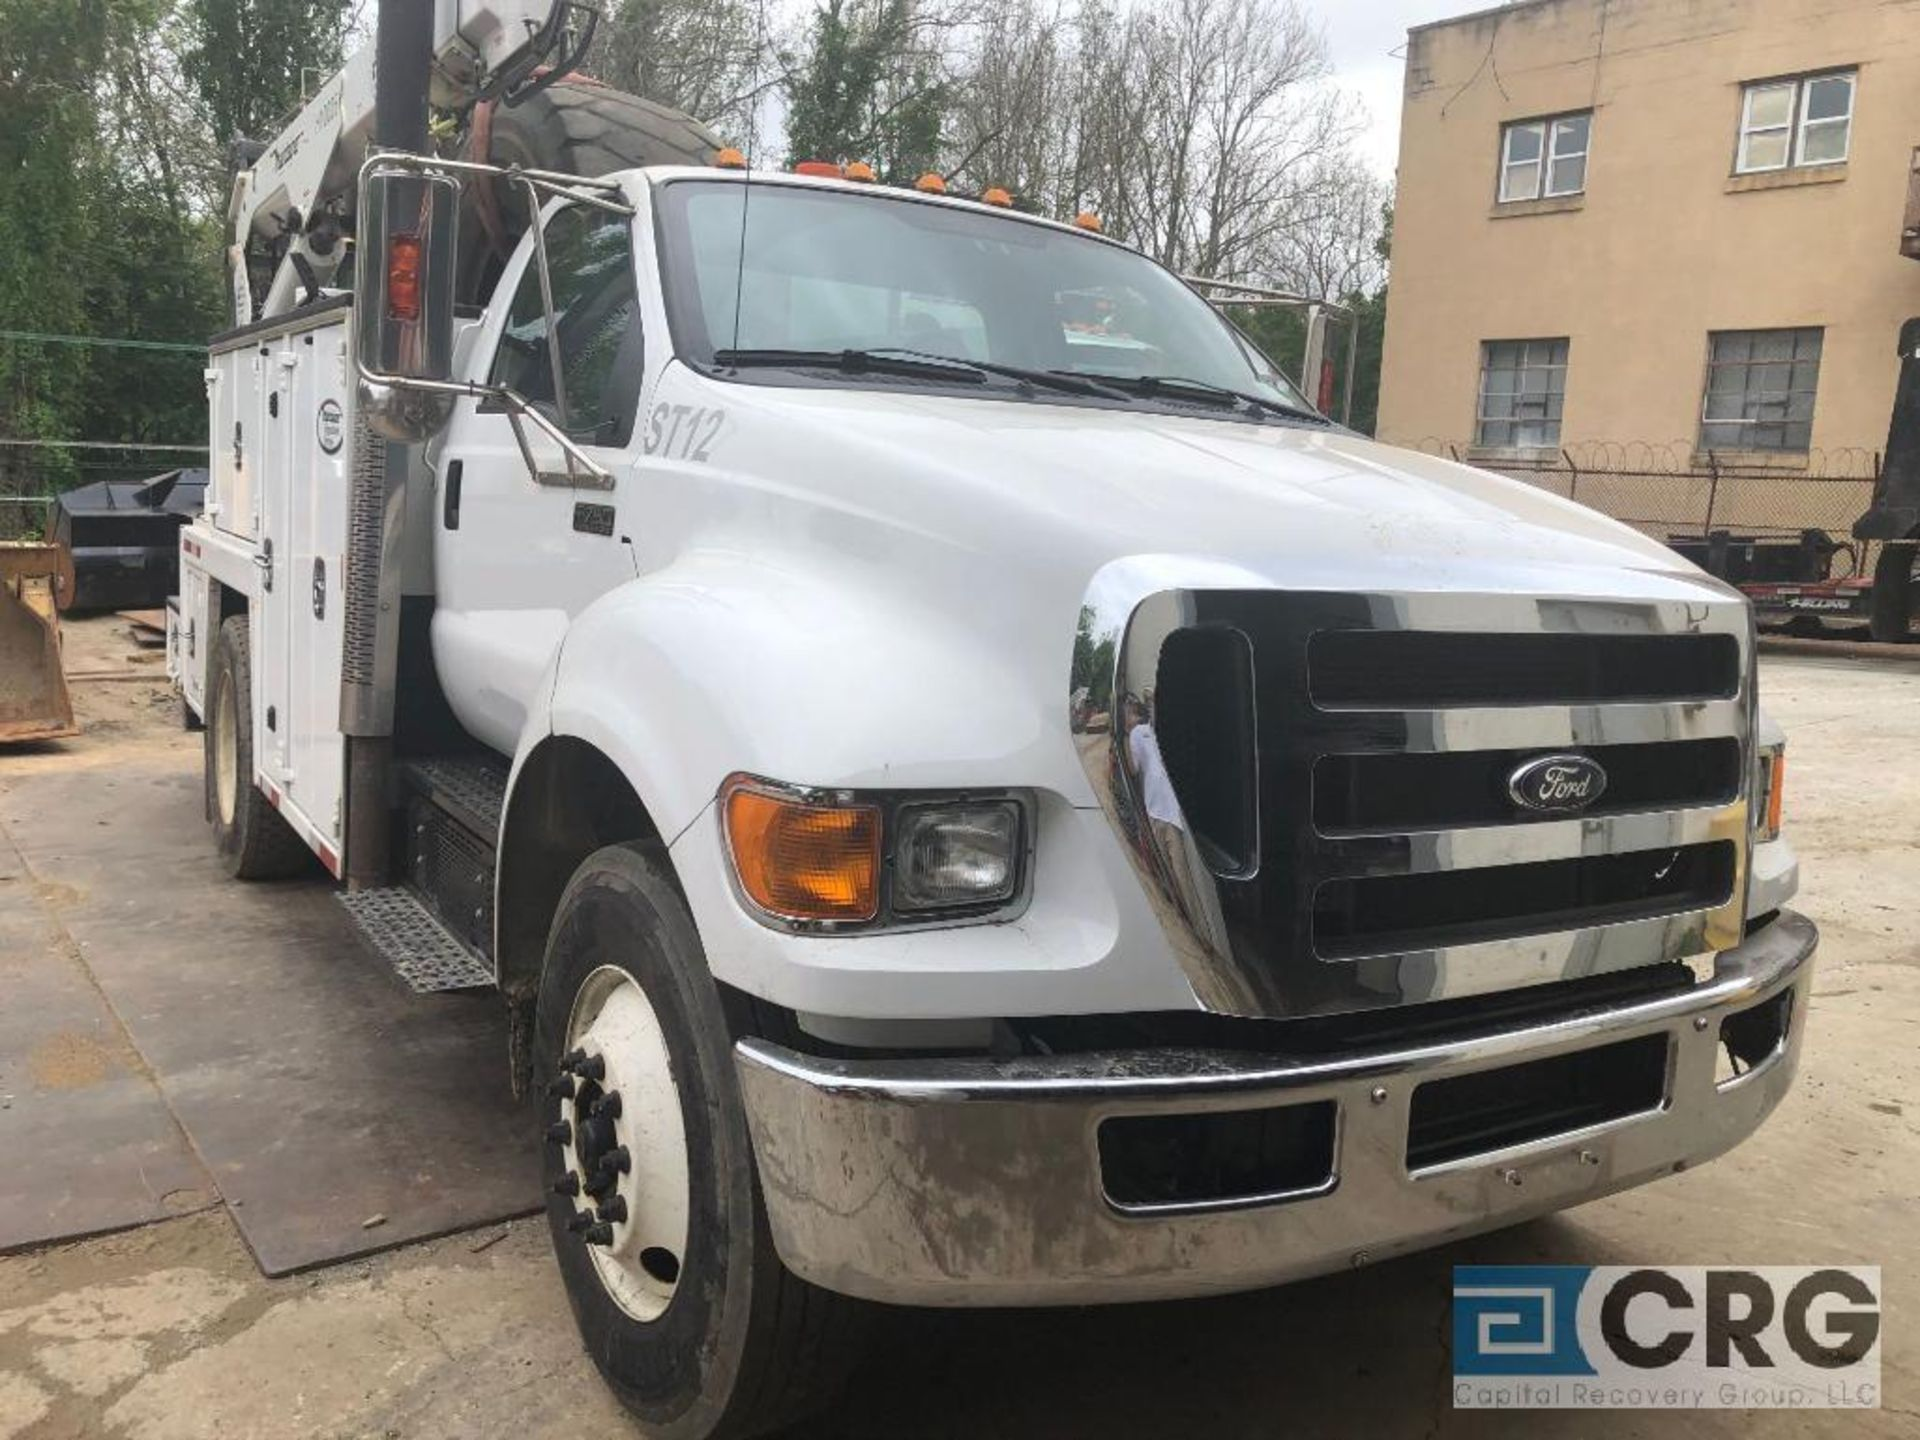 Lot 324 - 2013 Ford F750 SD Mechanics Truck, Maintainer MTS-2-084 Body, MTS Tall Tower Crane 10,000 lb